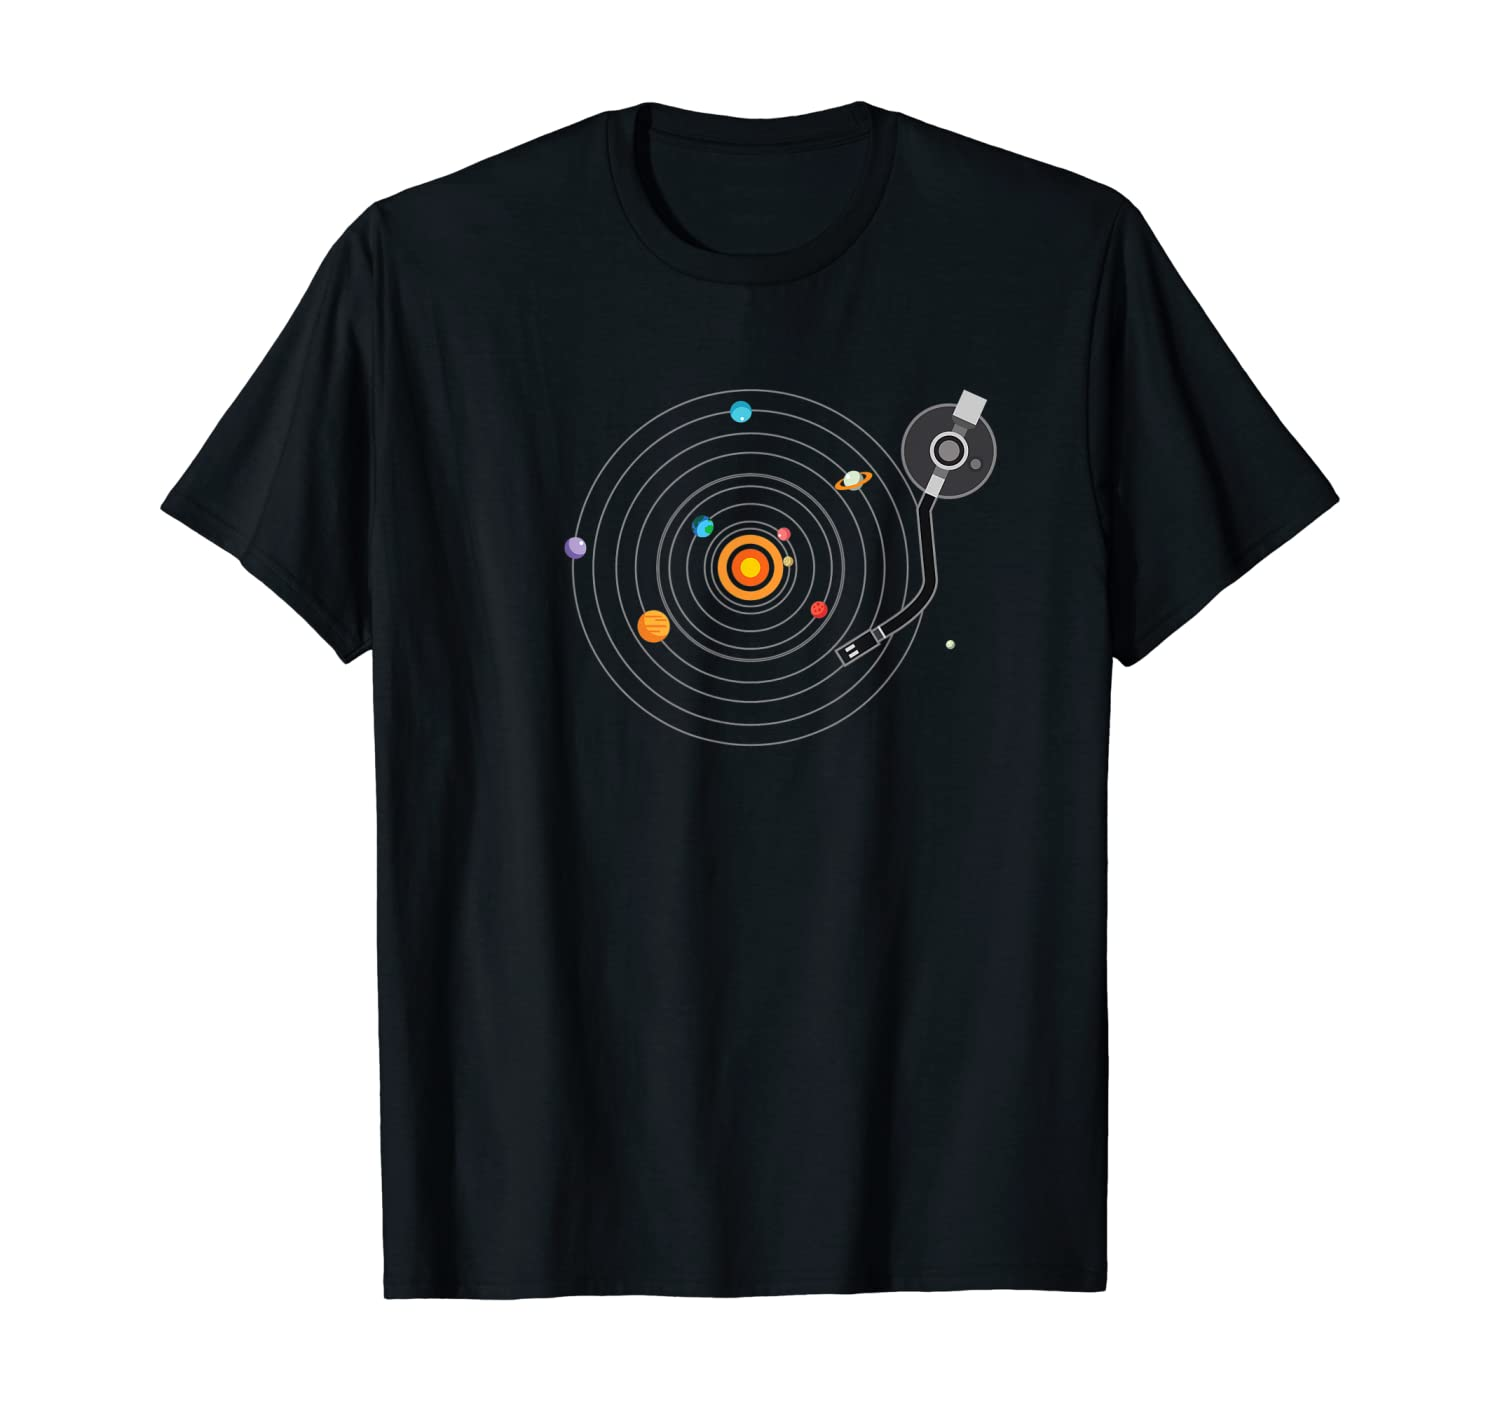 Shirt.Woot: Our Solar System on Vinyl T-Shirt